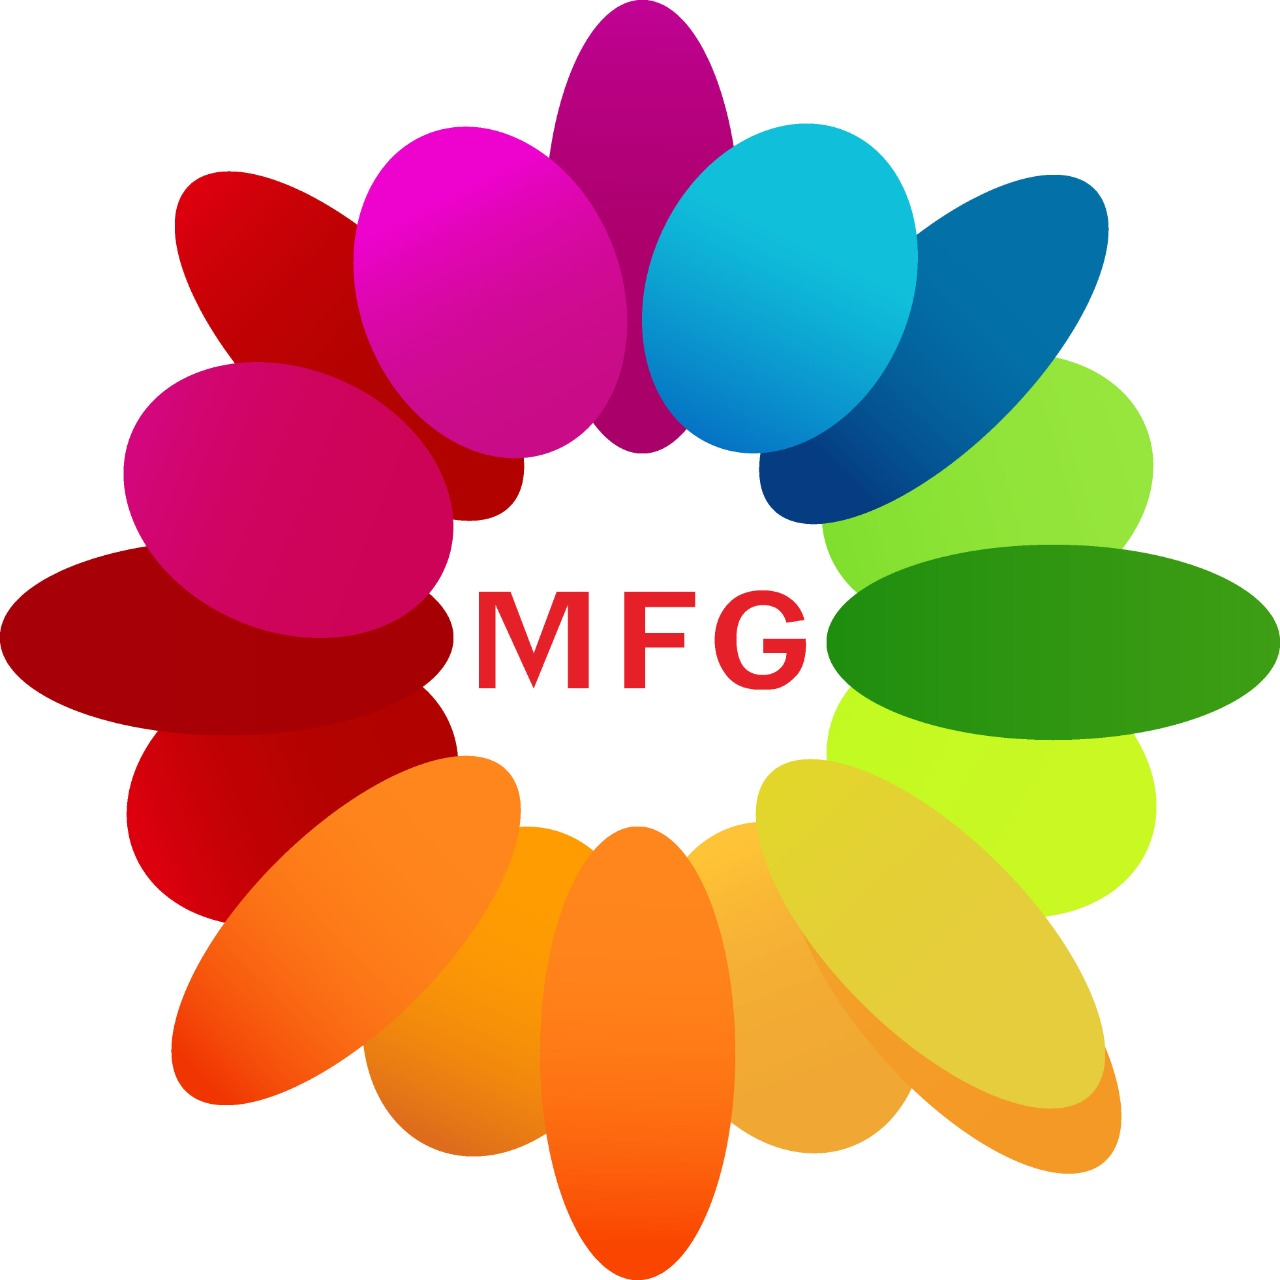 Basket of 40 red and white roses, basket of assorted chocolates, 6 inch white teddybear, greeting card